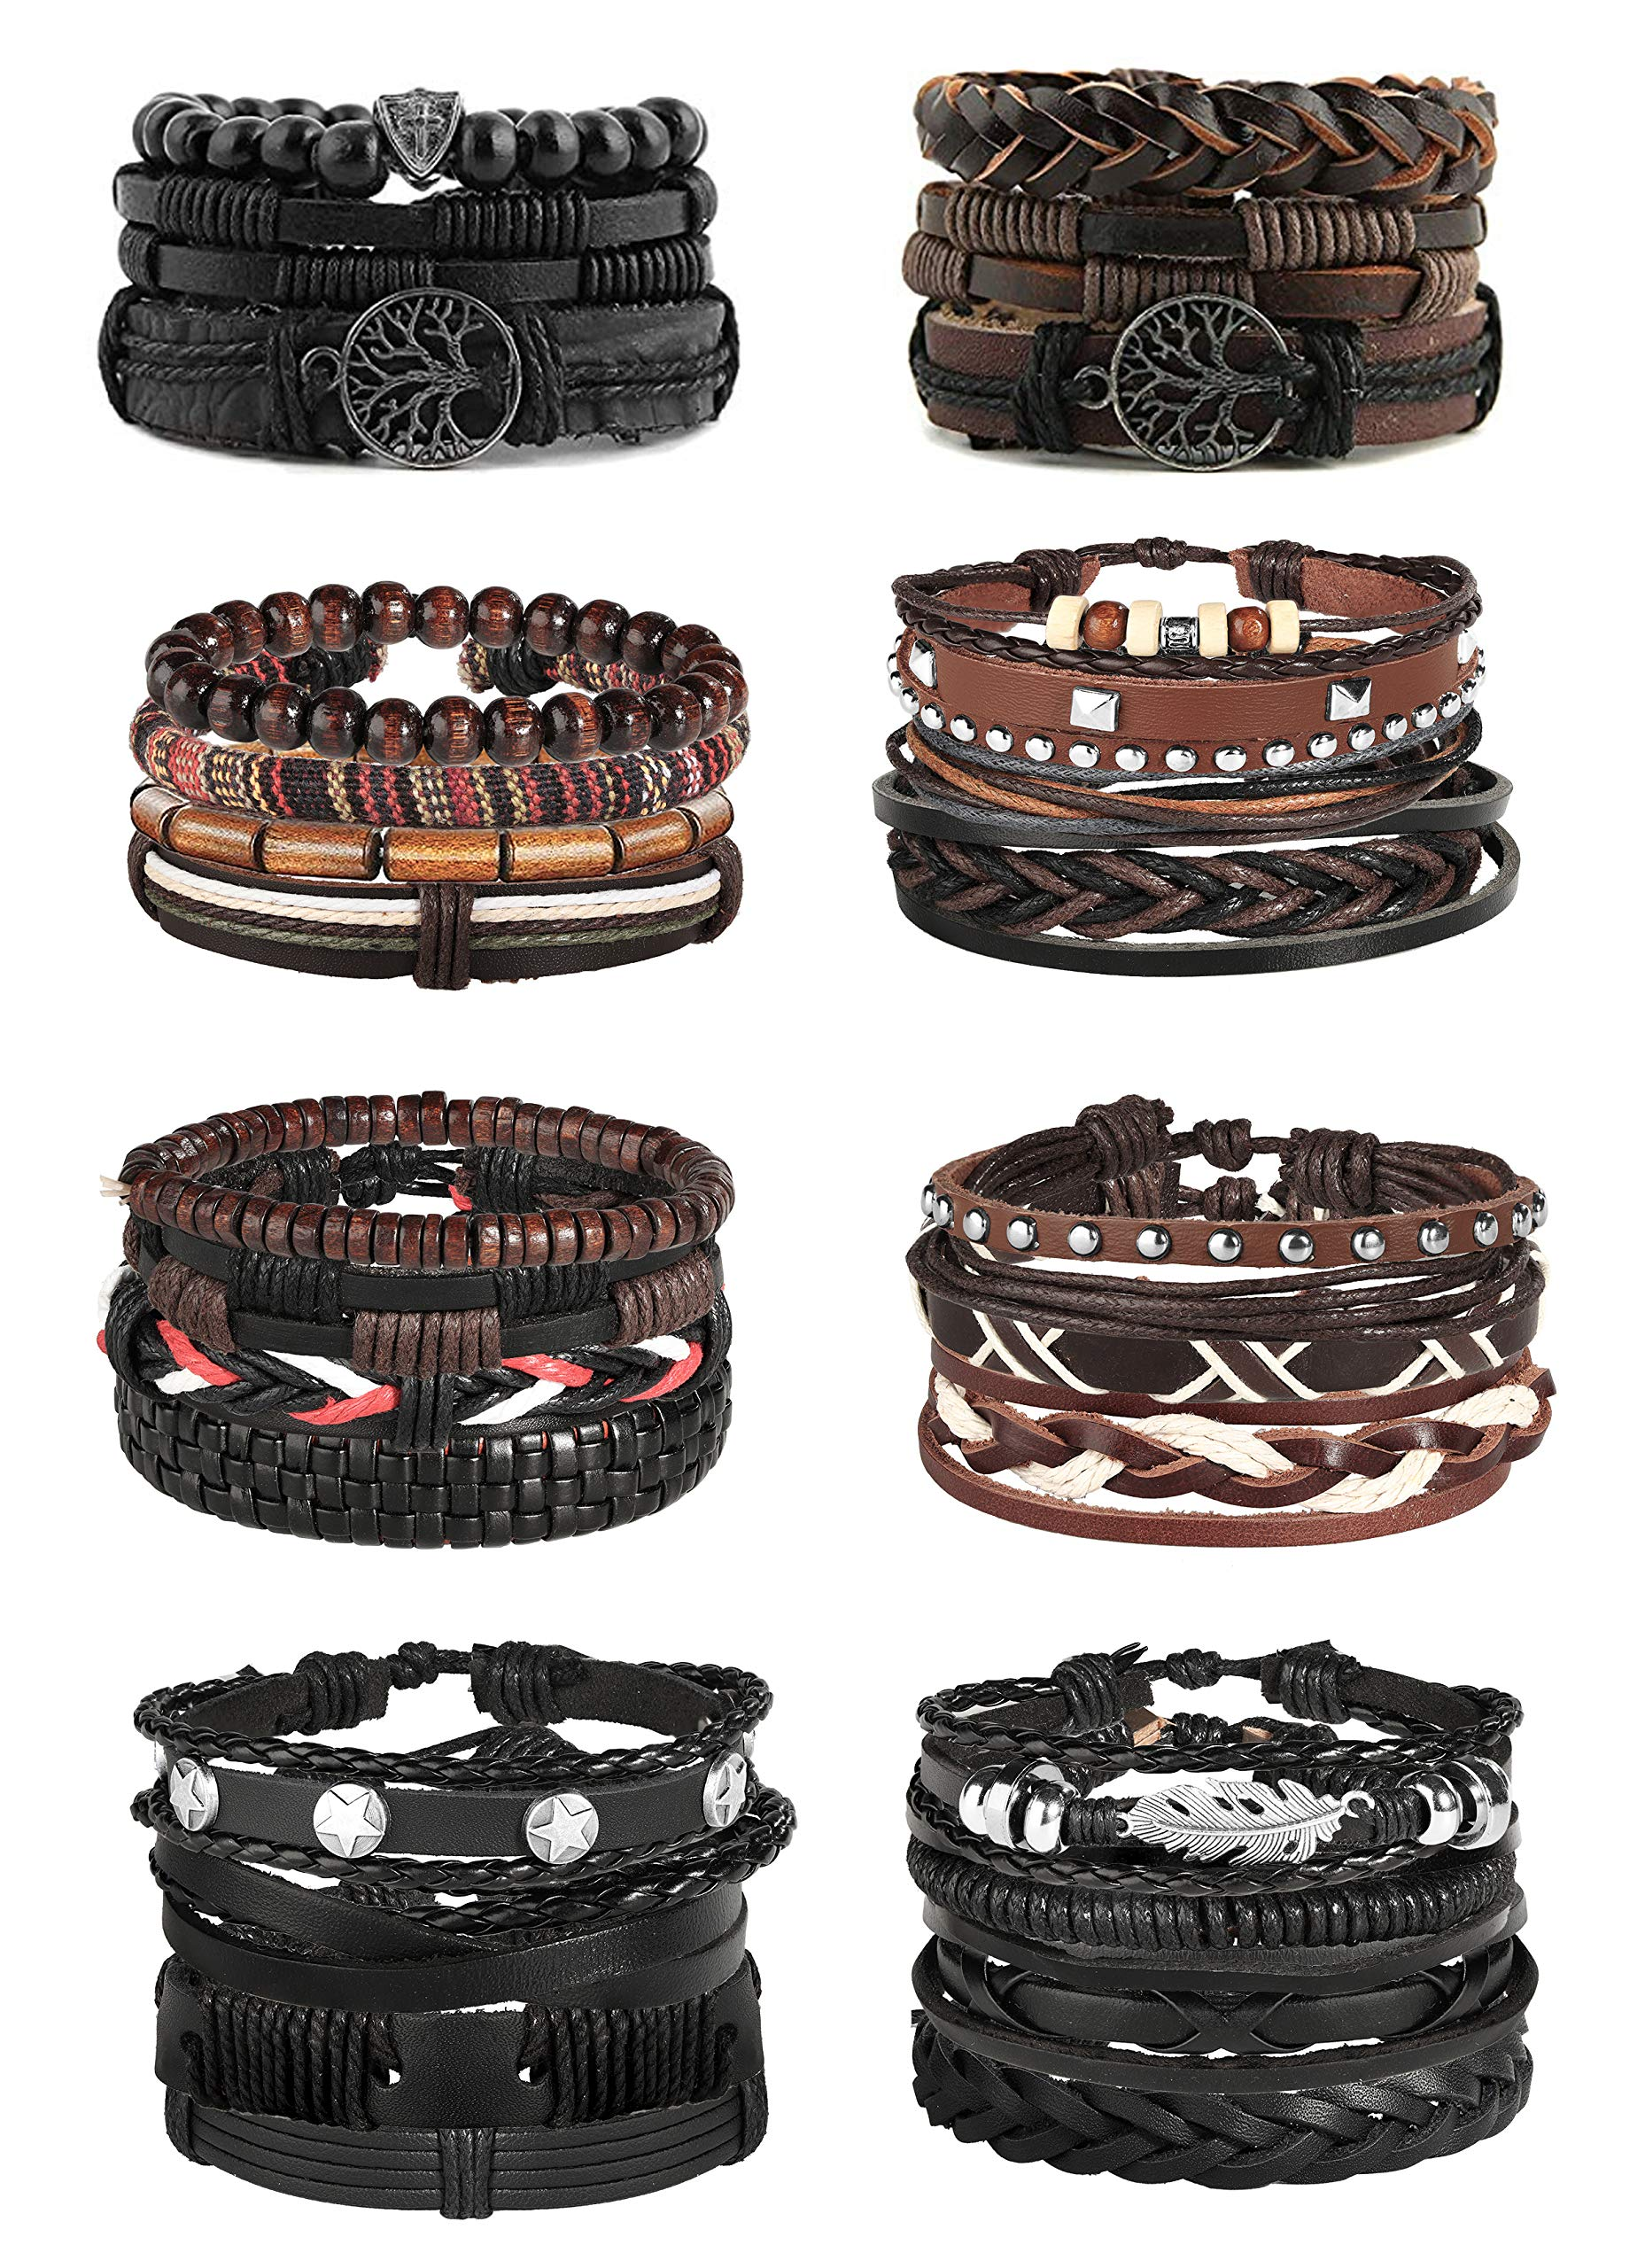 Jstyle 28Pcs Braided Leather Bracelet for Men Women Wooden Beaded Cuff Wrap Bracelet Adjustable C by Jstyle